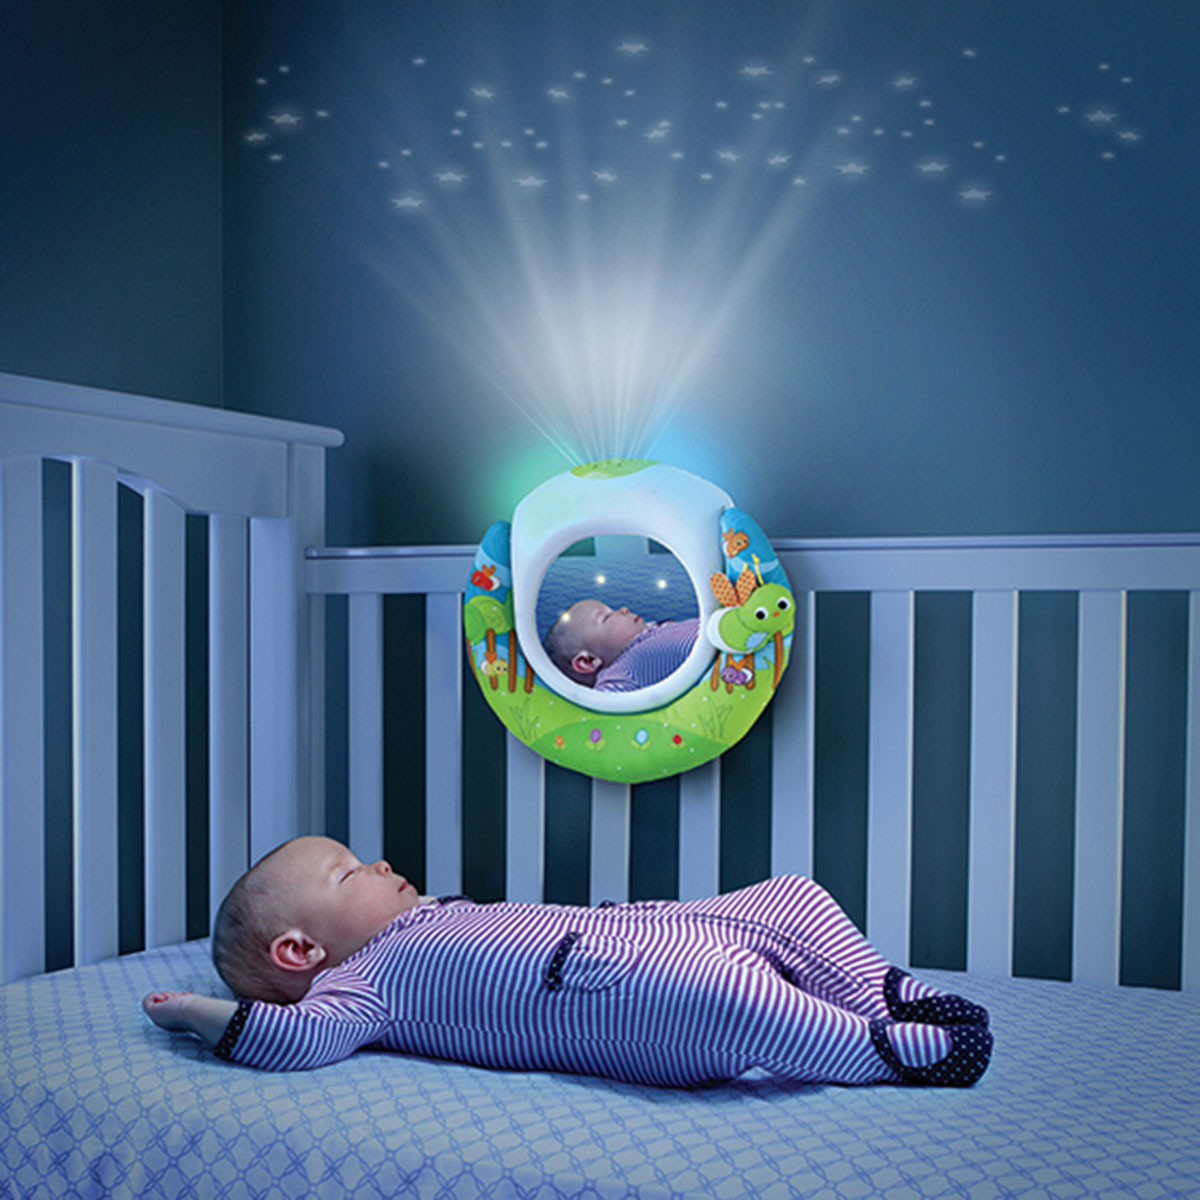 Ceiling star projector baby pranksenders for Kids room night light